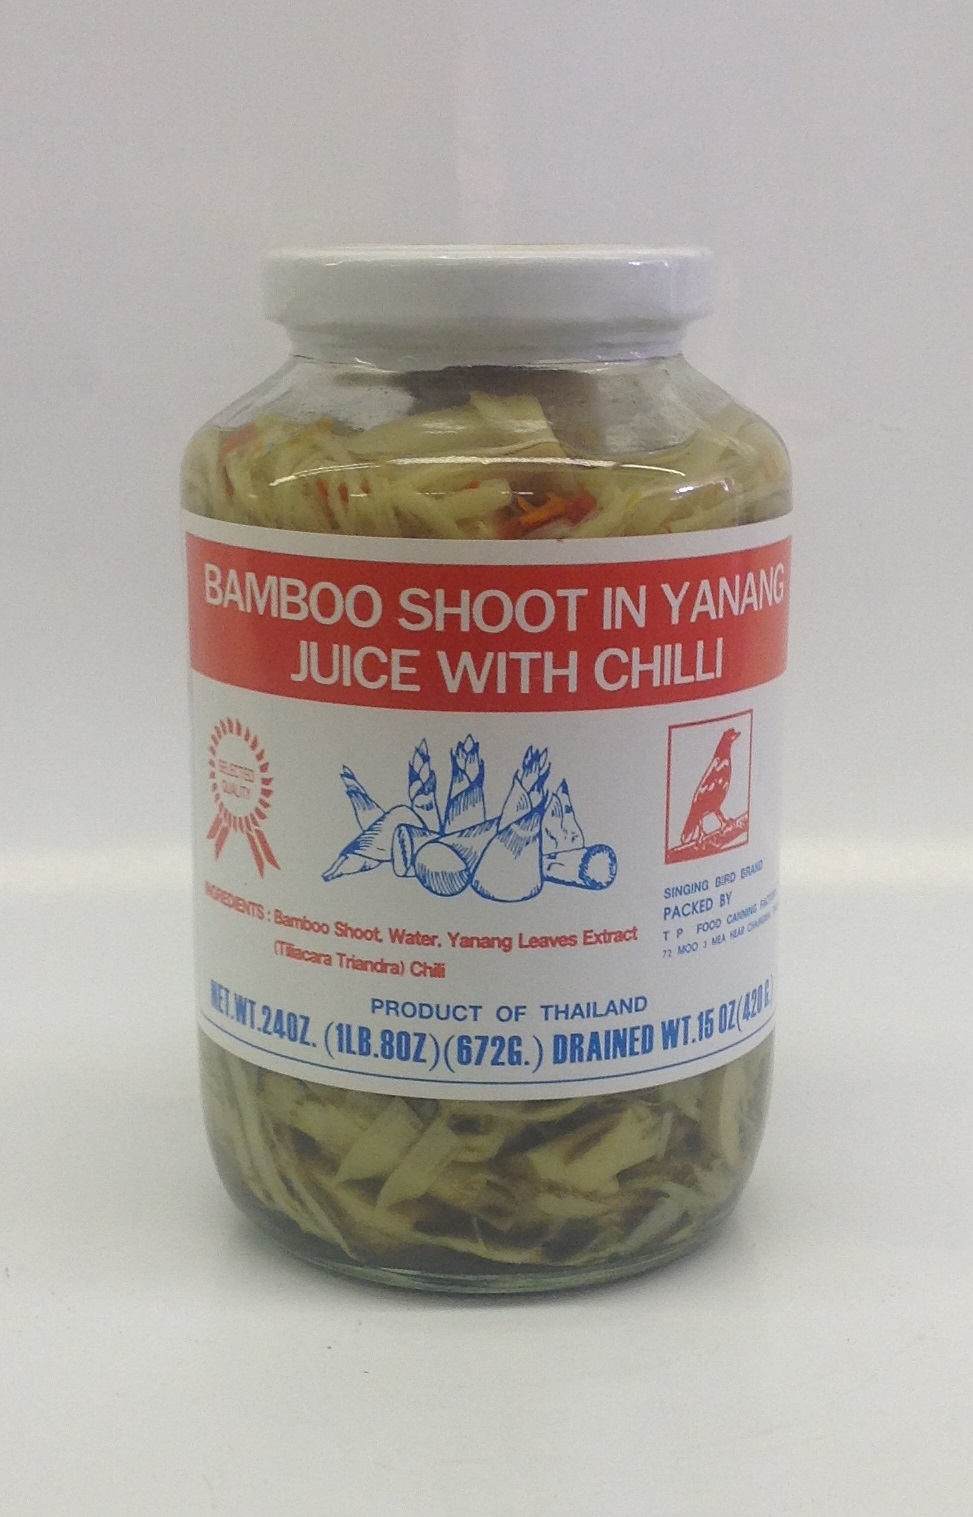 Bamboo Shoot in Yanang Juice with Chilli    Singing Bird   BBY1270 12x24 oz